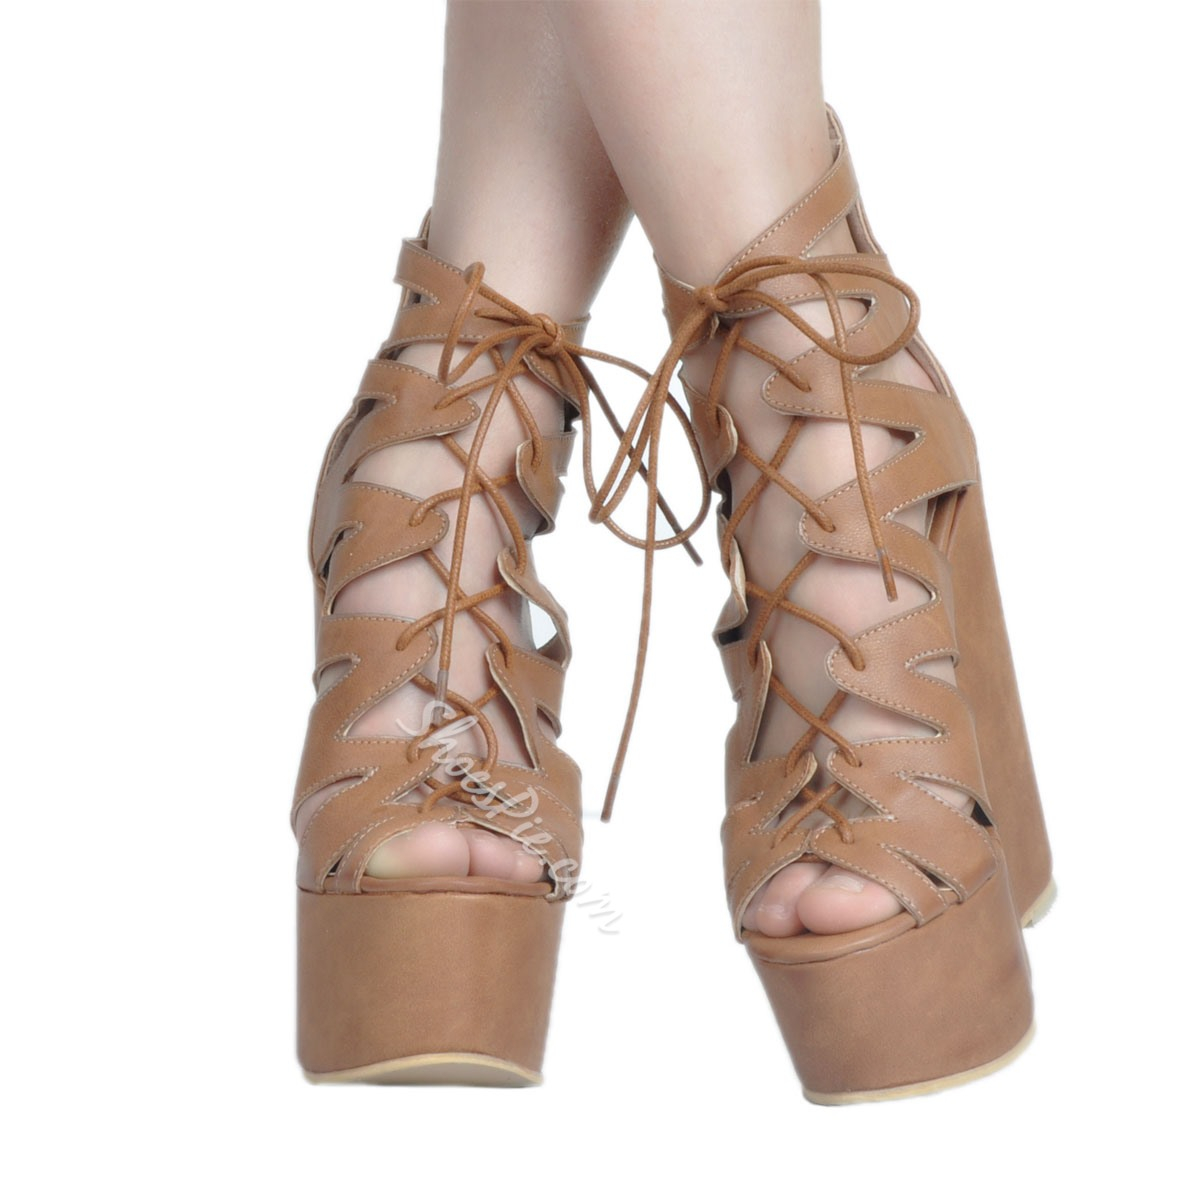 86ac88e17a67 Shoespie Zipper Peep Toe Cross Strap Platform Wedge Heels Gladiator Sandals